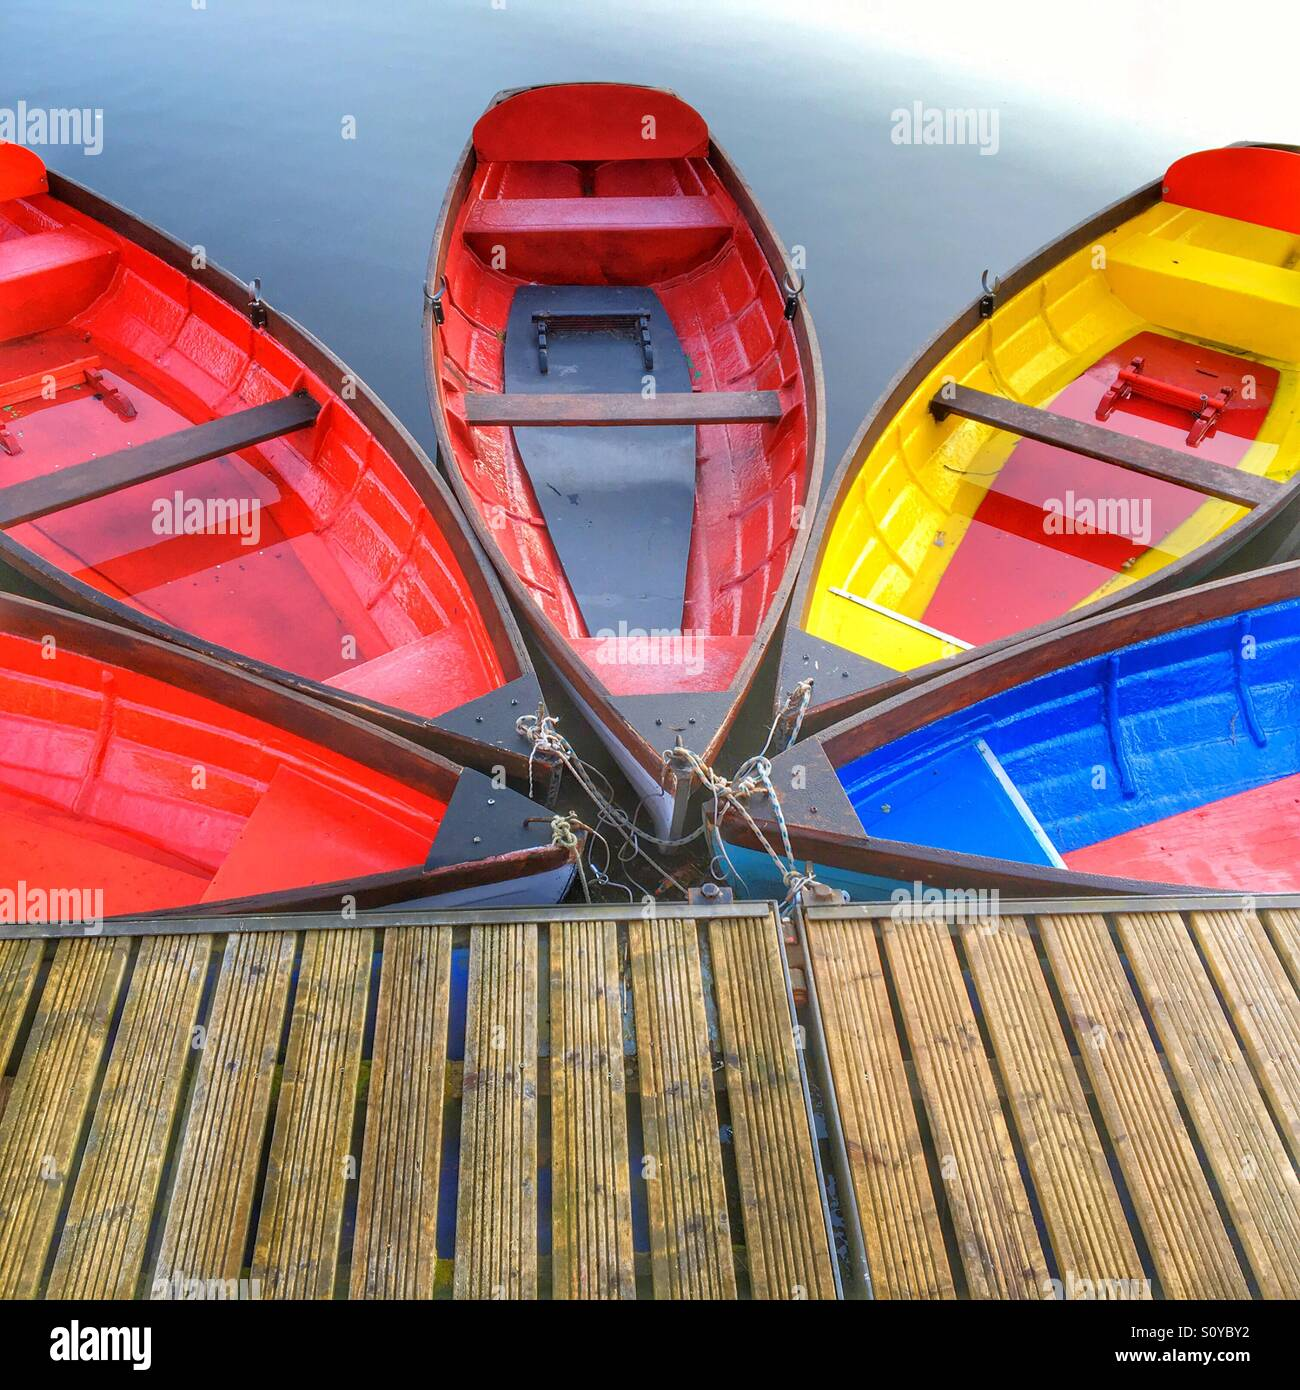 Five colourful rowing boats moored in a fan pattern - Stock Image